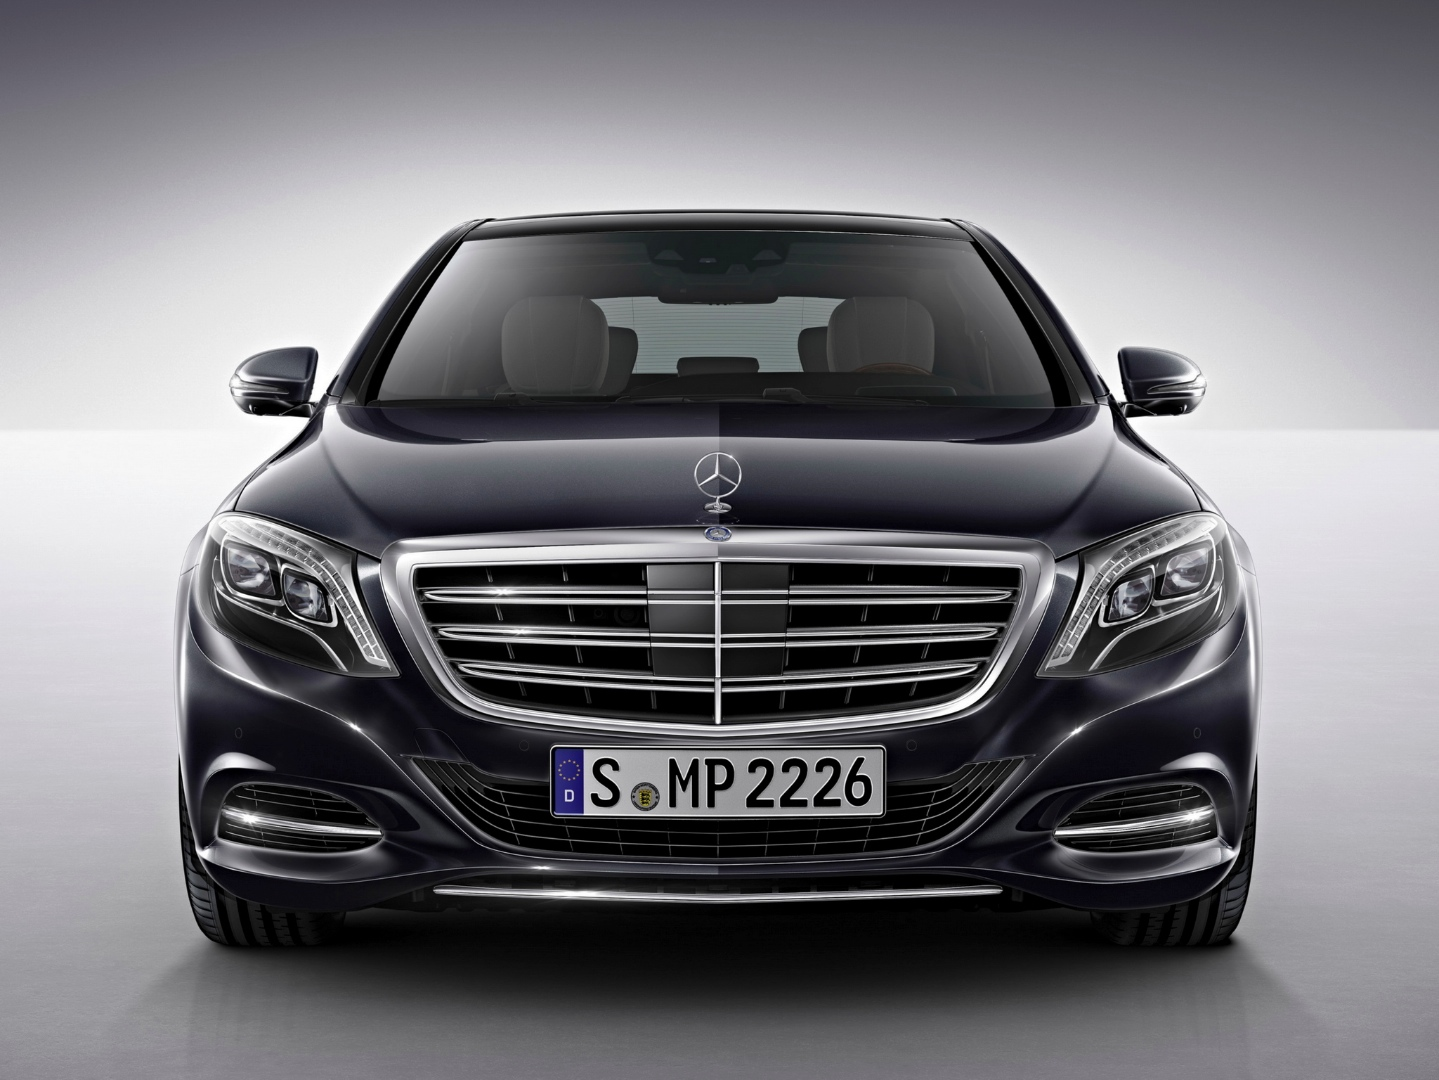 Mercedes Benz S Class Is 2014 World Luxury Car Of The Year